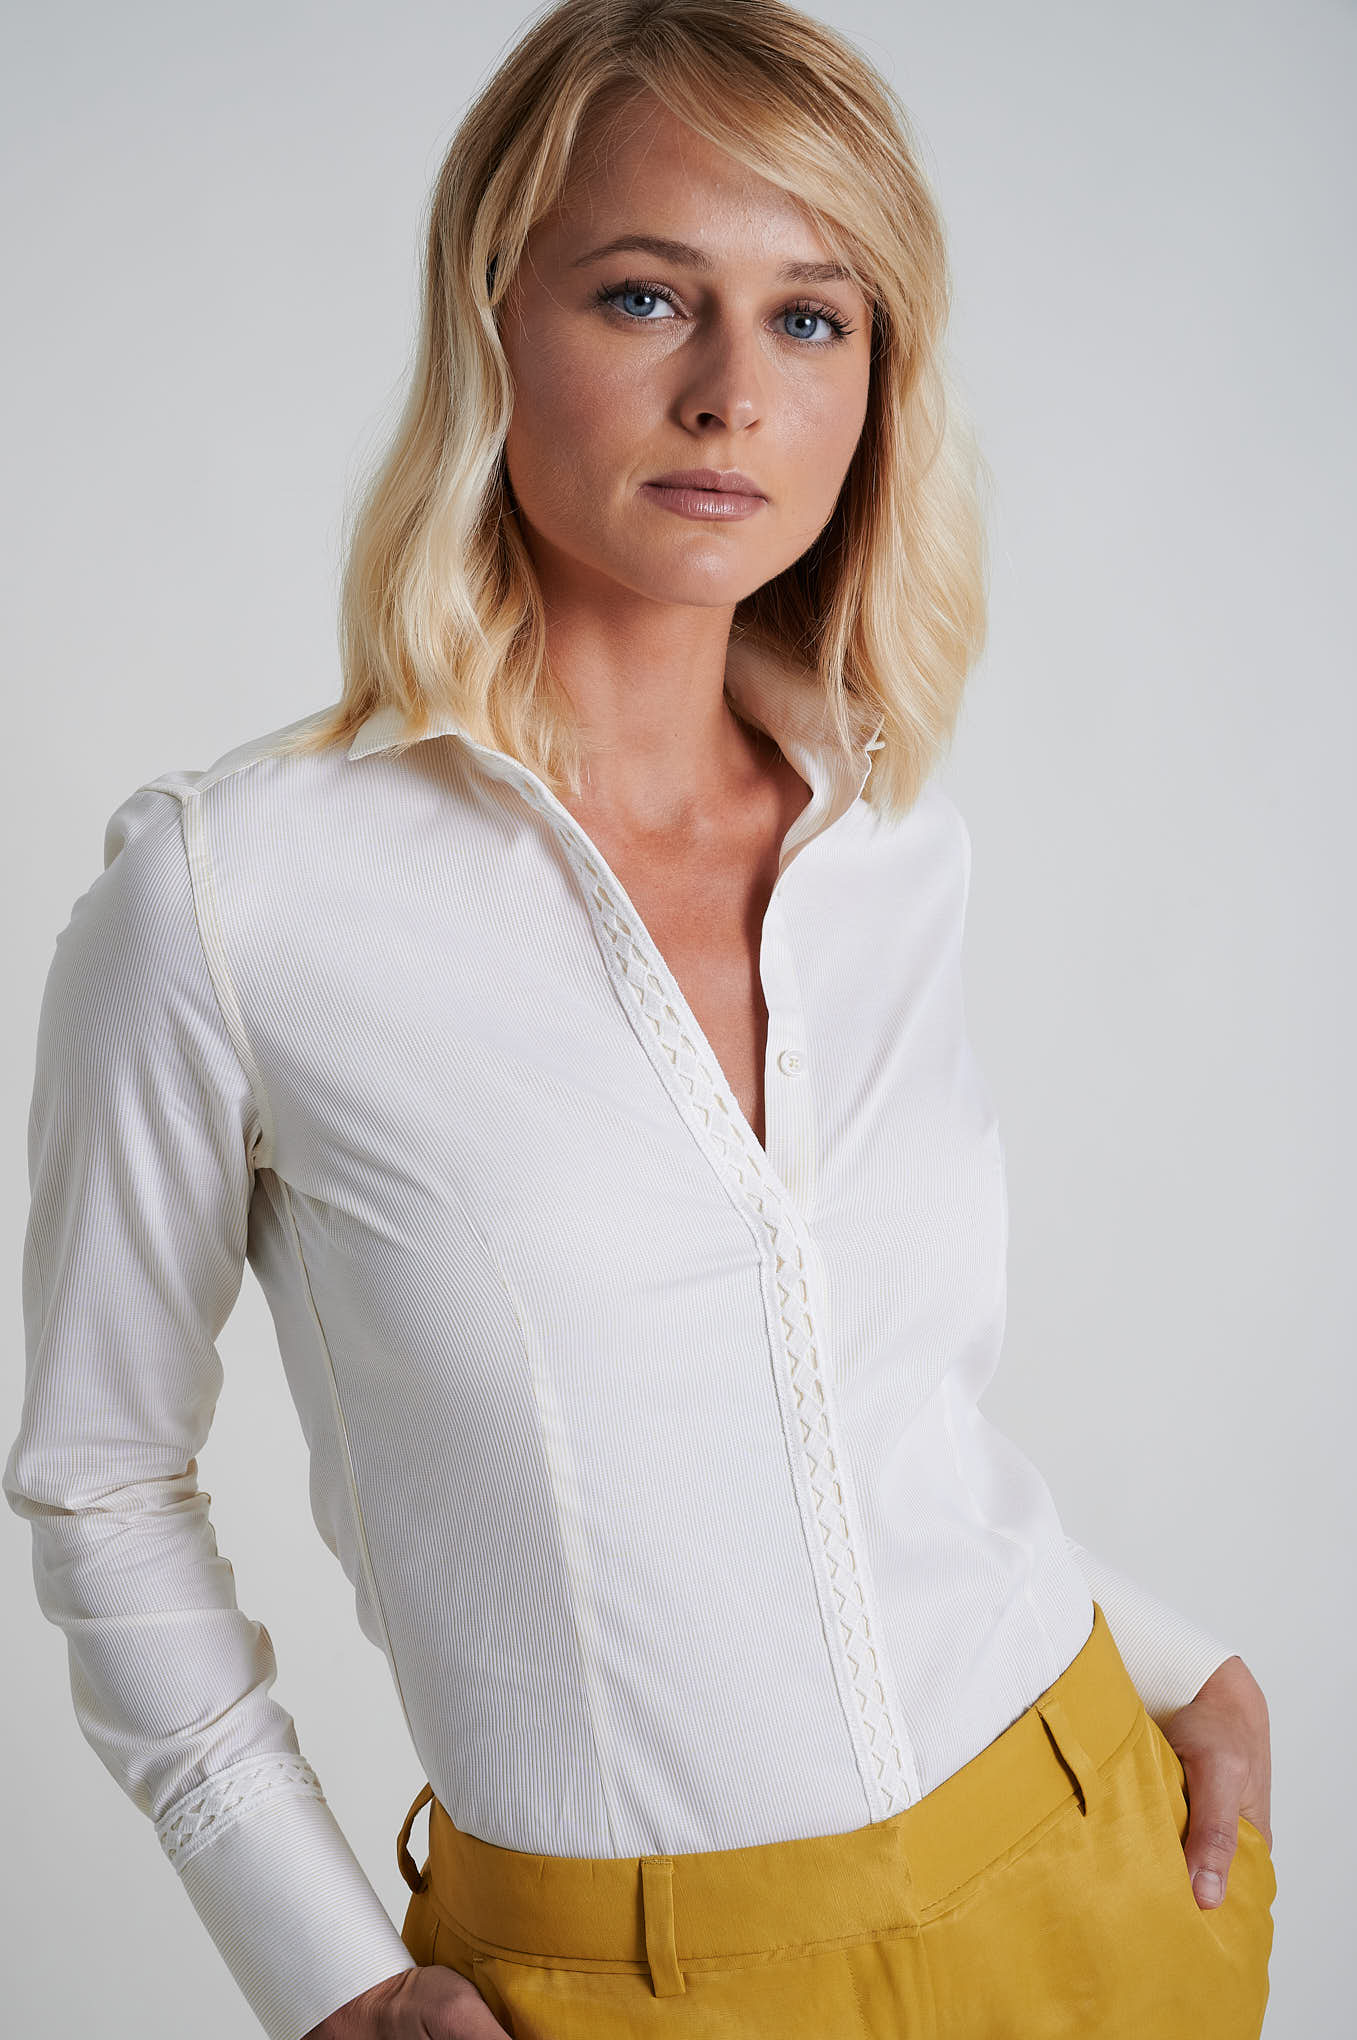 Shirt Yellow Formal Woman